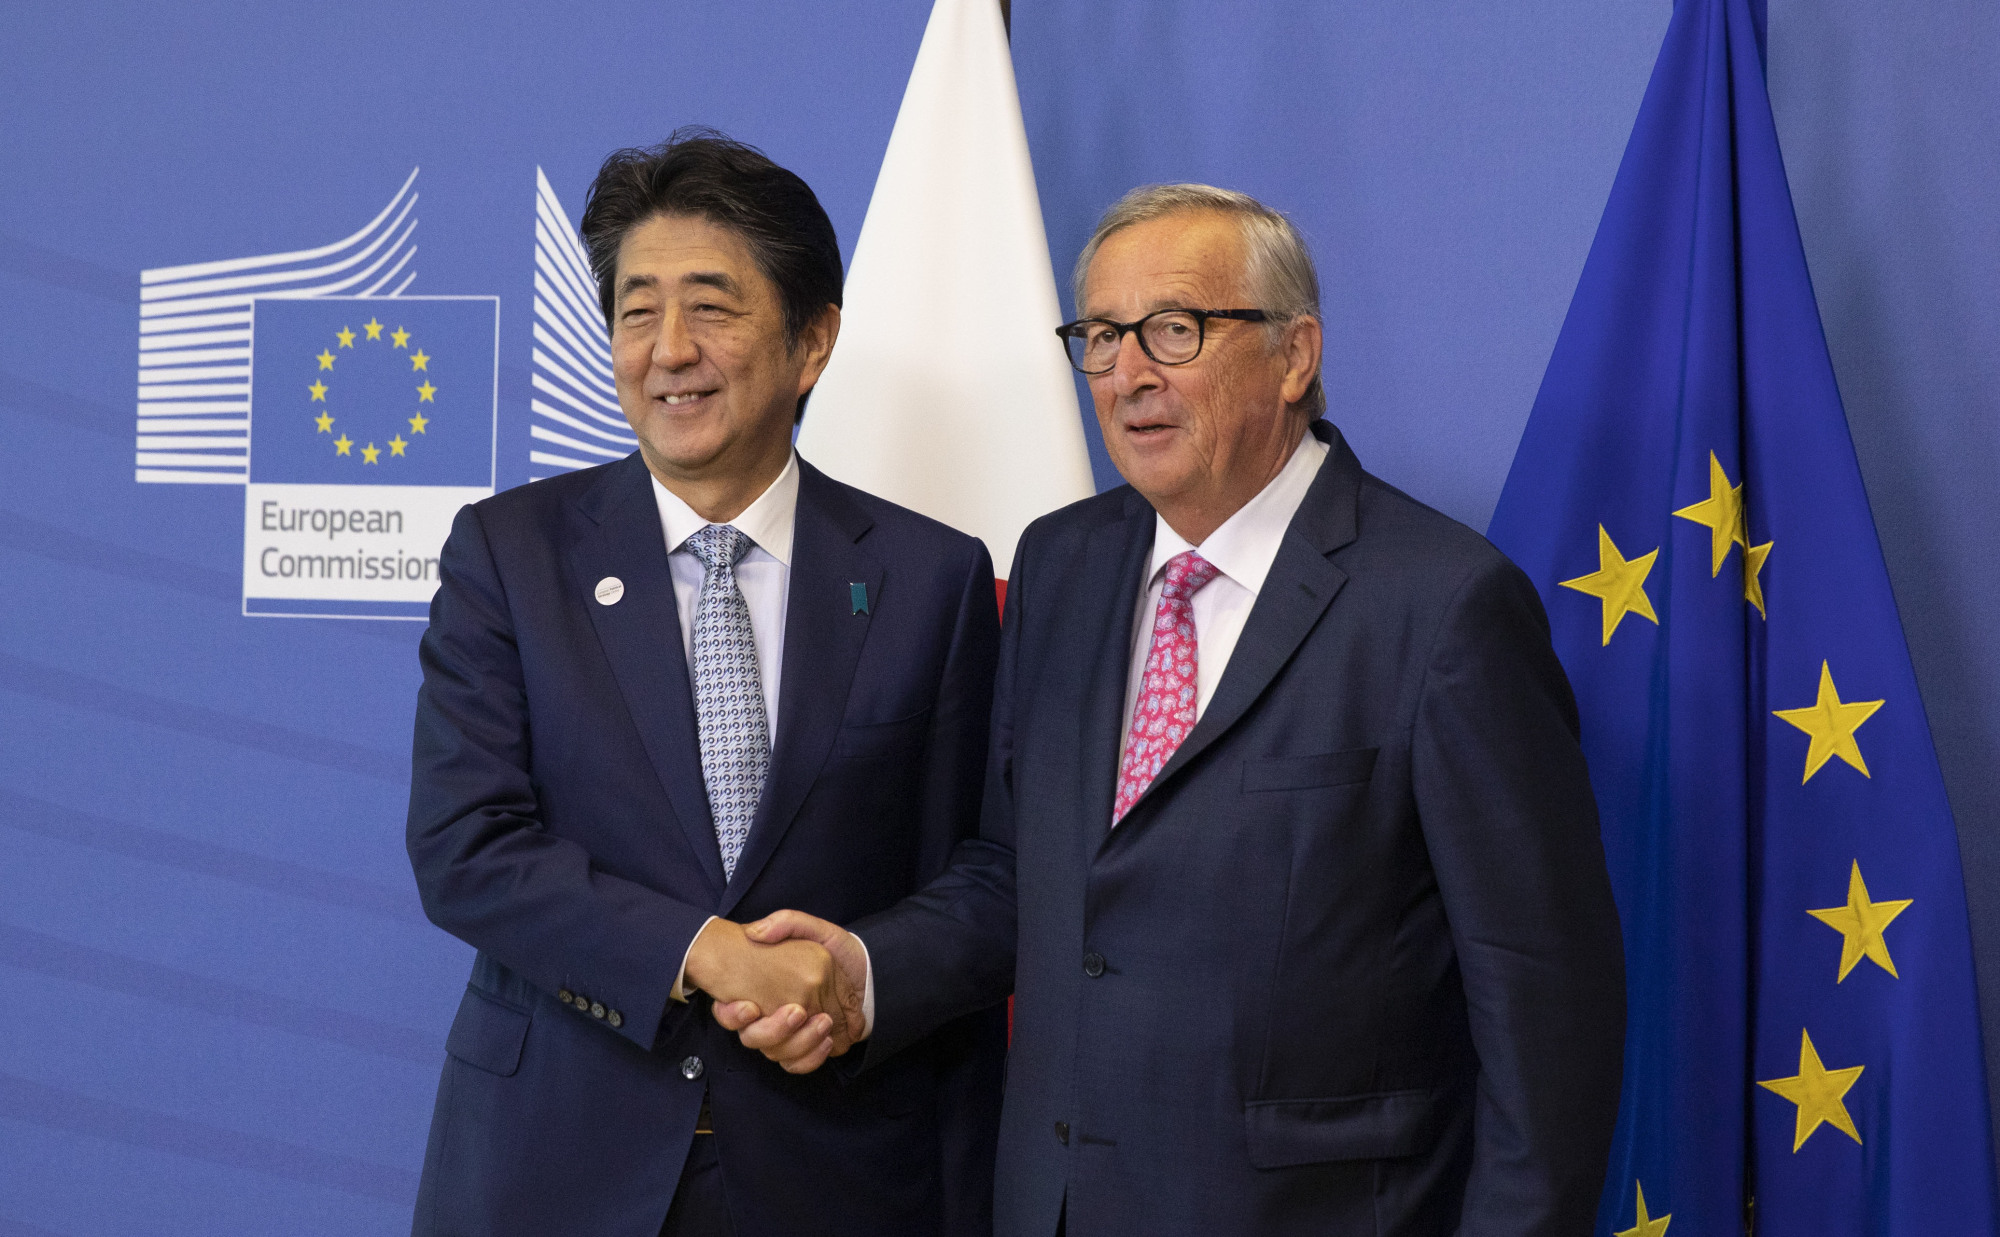 Prime Minister Shinzo Abe is greeted by European Commission President Jean-Claude Juncker prior to a meeting at EU headquarters in Brussels on Sept. 27. The new Japan-EU agreement is an important move in the right direction to meet China's international challenges.   AP